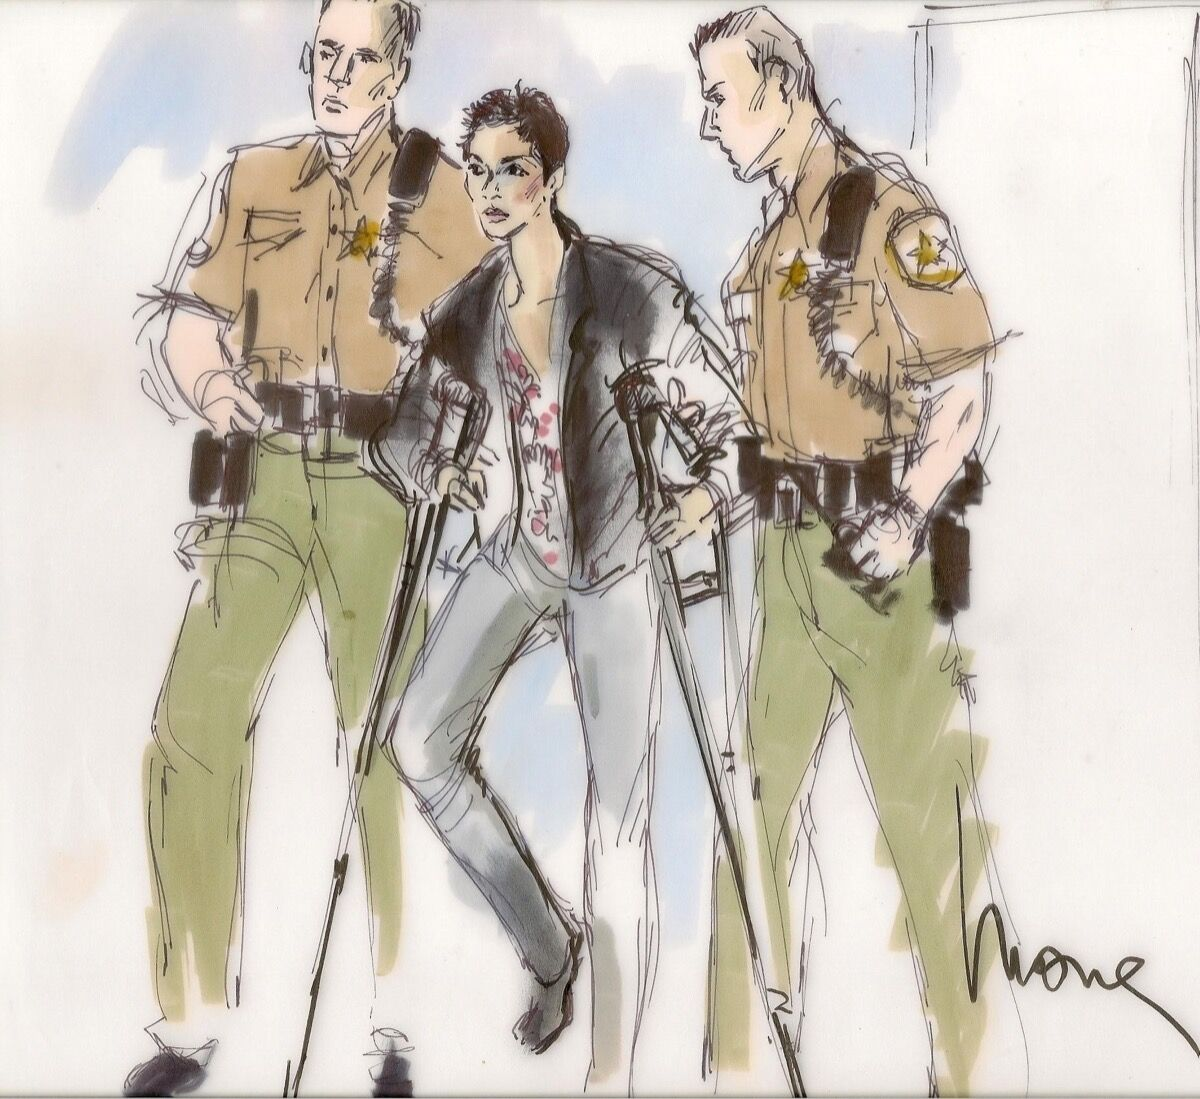 Illustration of Halle Berry by Mona Shafer Edwards.